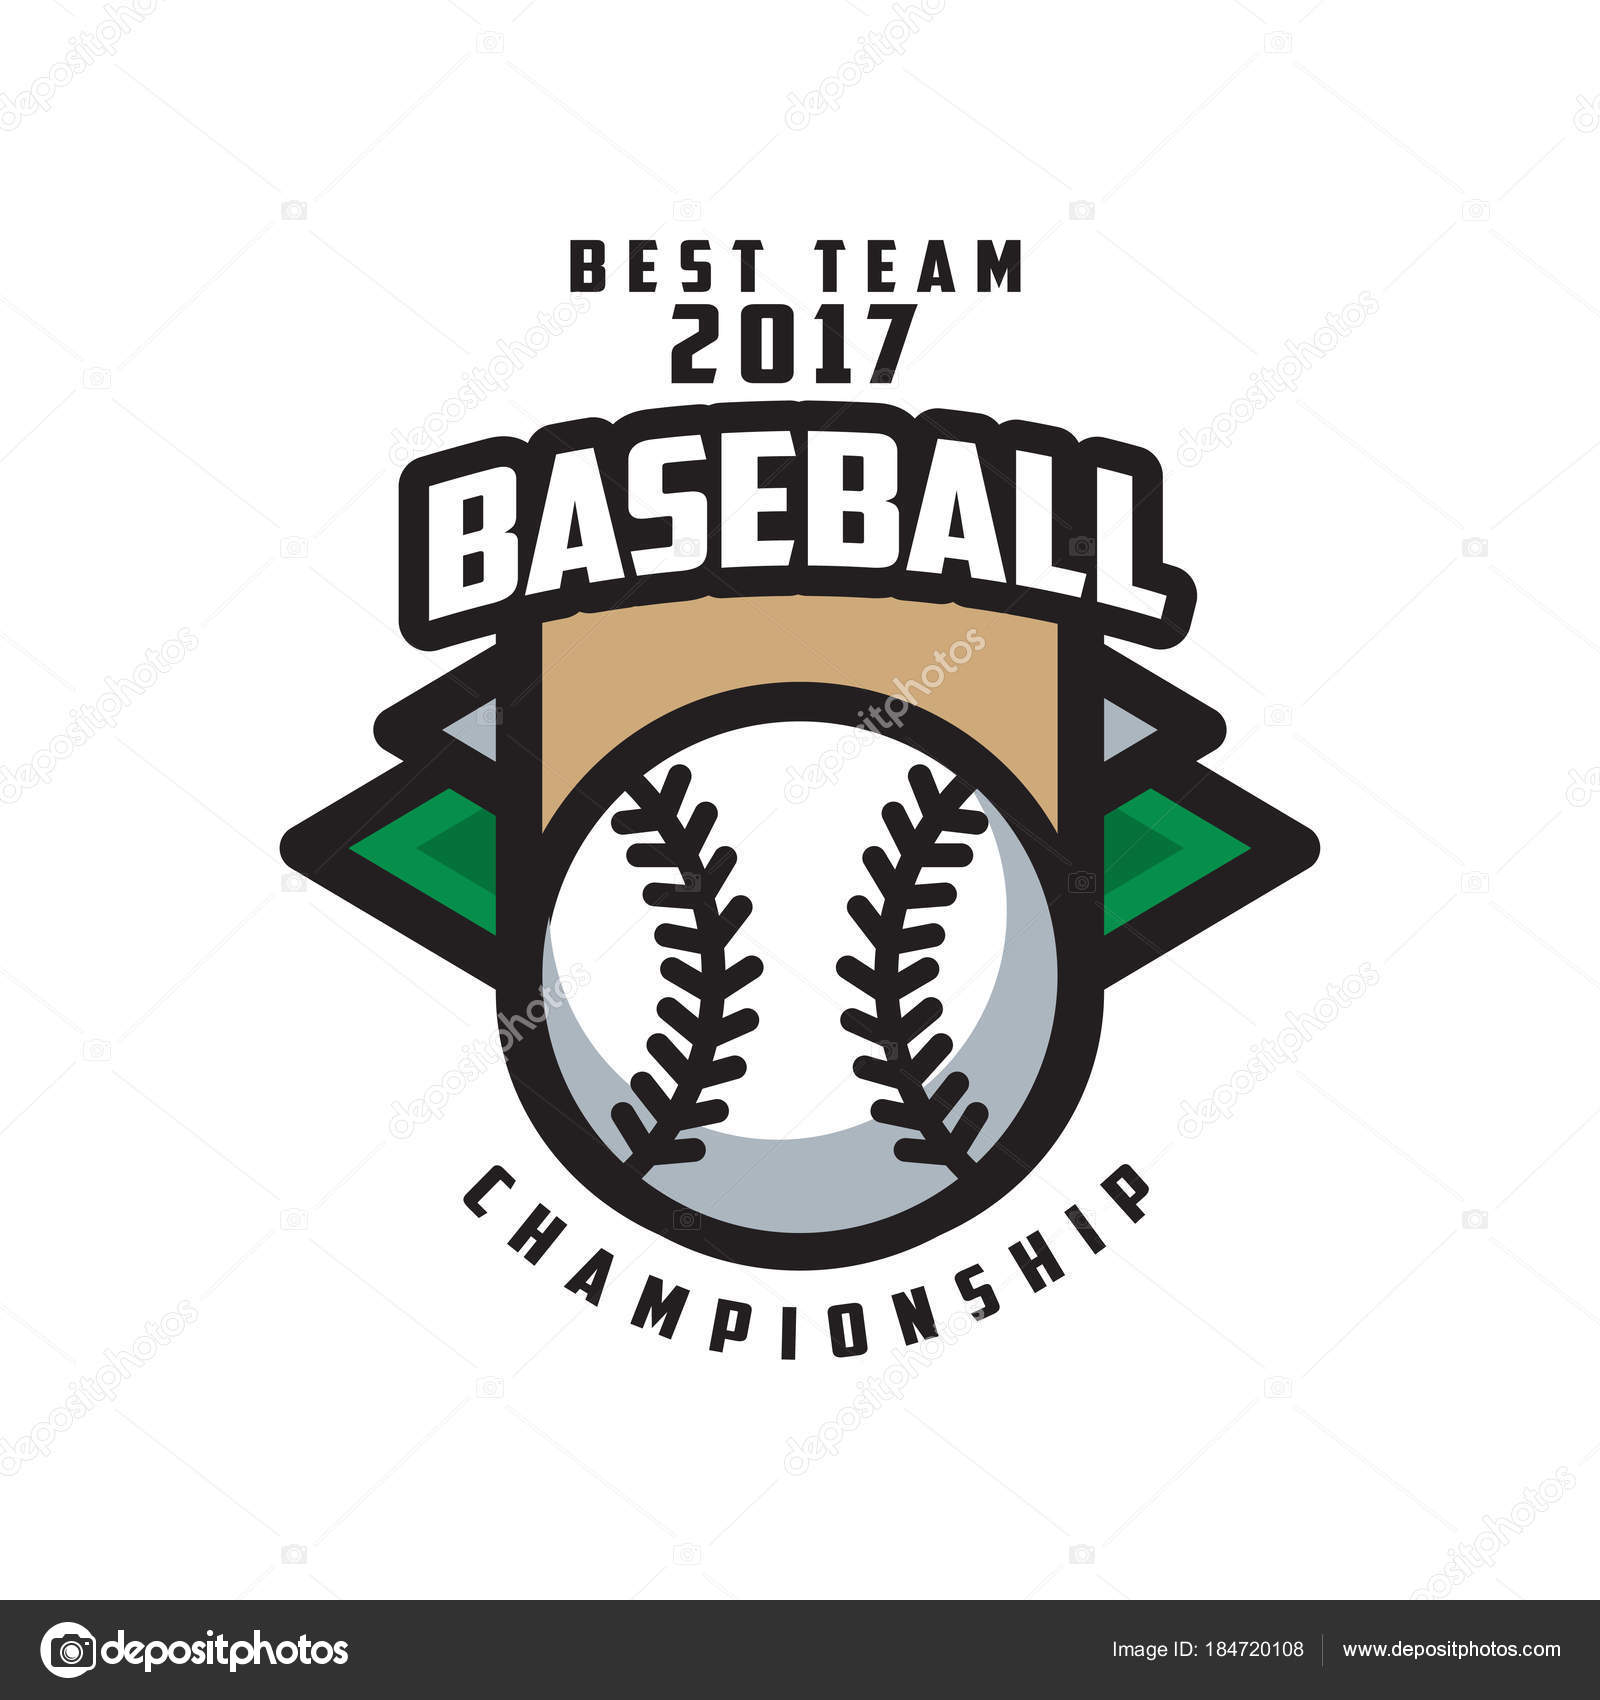 Baseball Championship Best Team 2017 Logo Template Design Element For Badge Banner Emblem Label Insignia Vector Illustration Isolated On A White